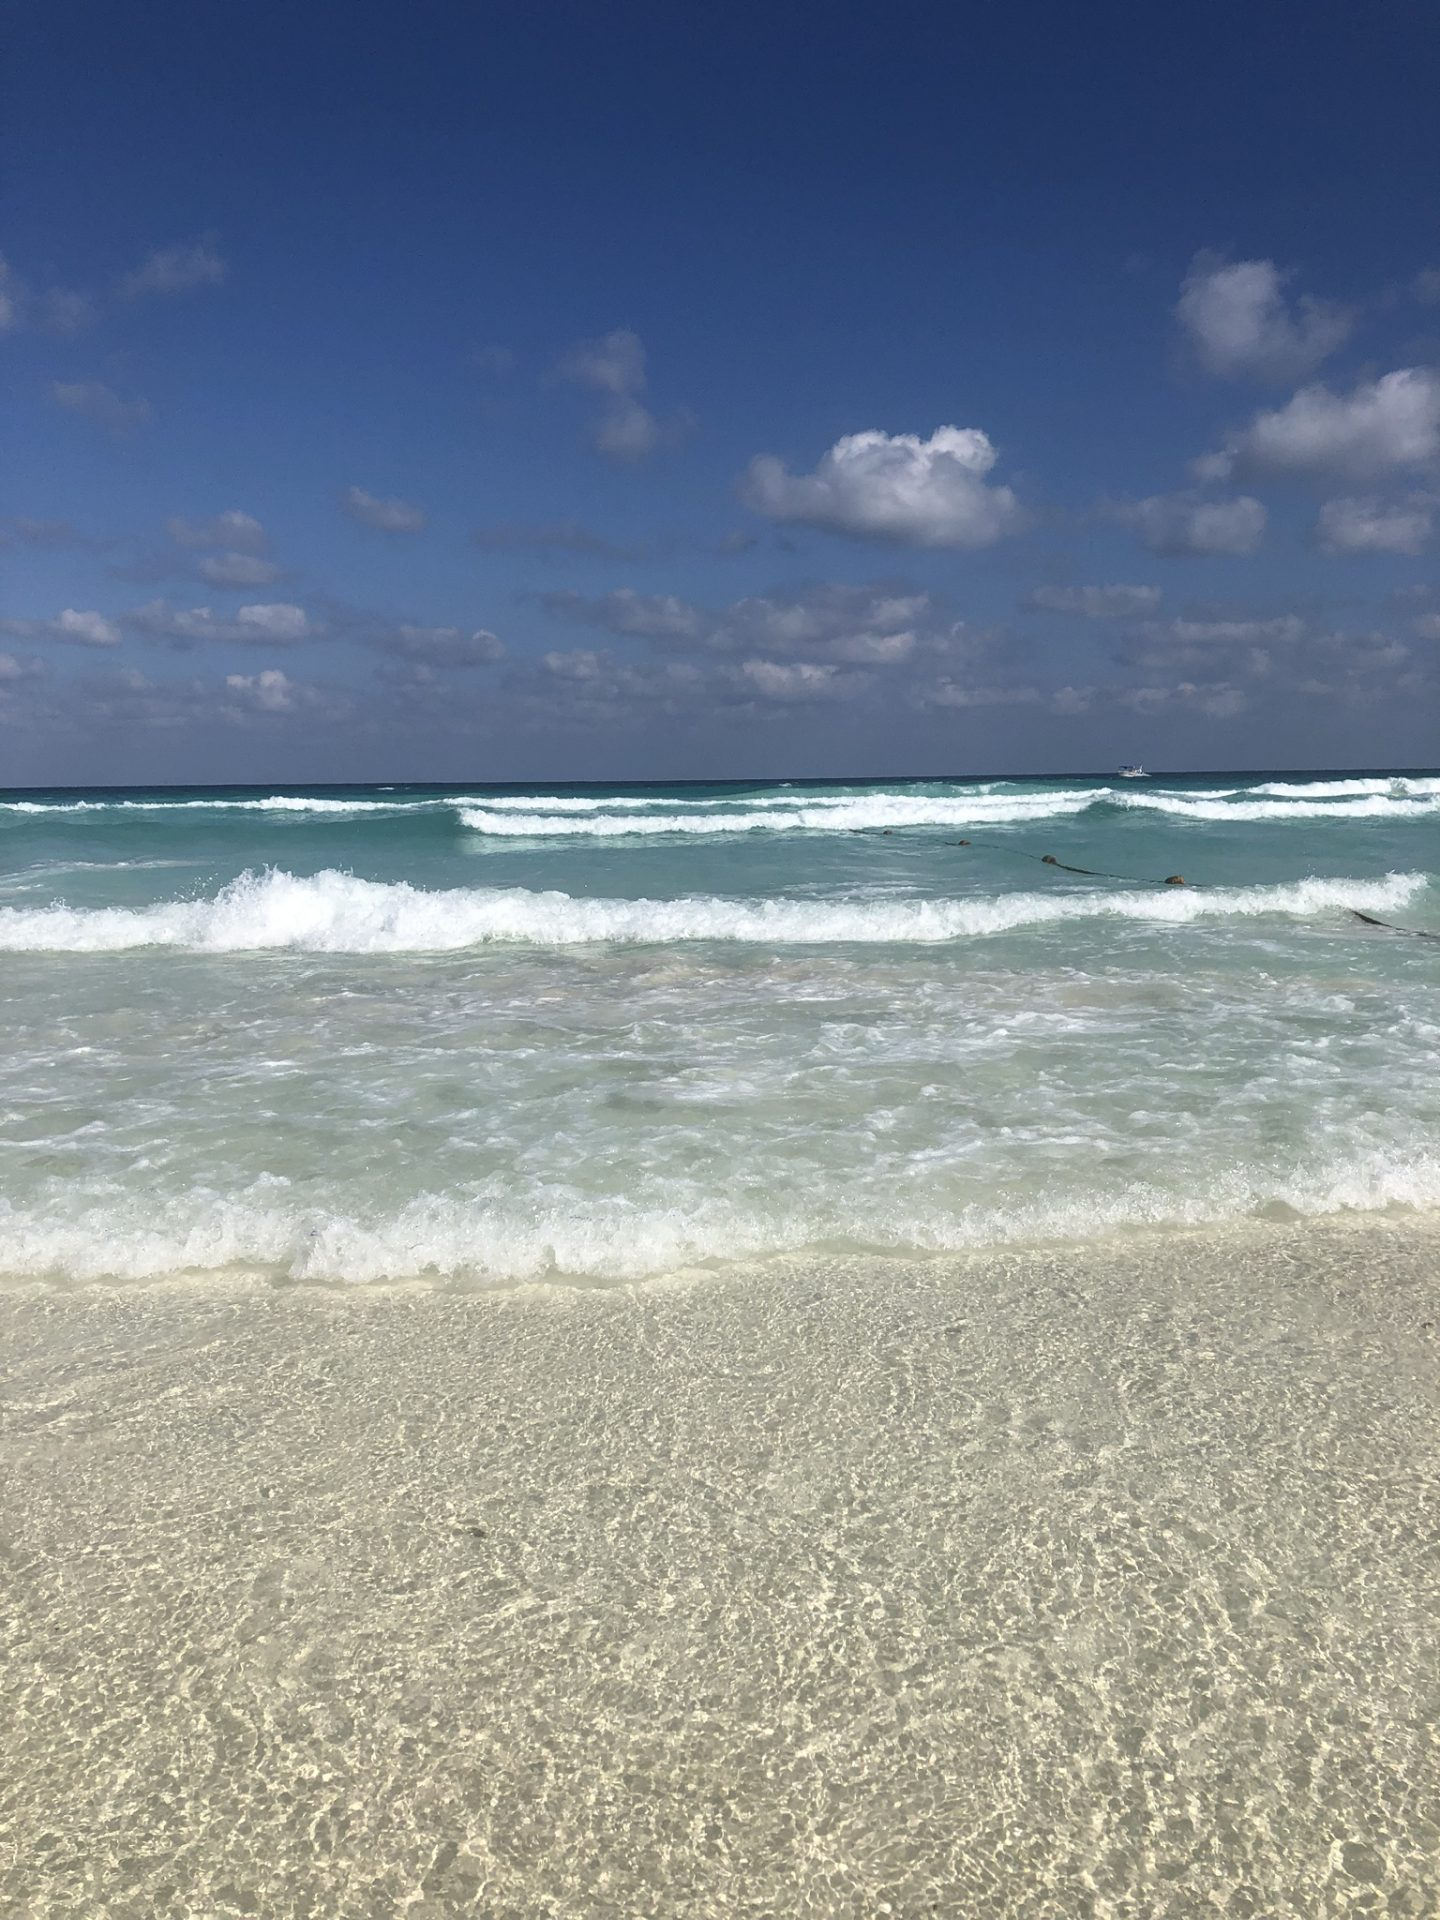 The beach in Cancún, Quintana Roo, Mexico